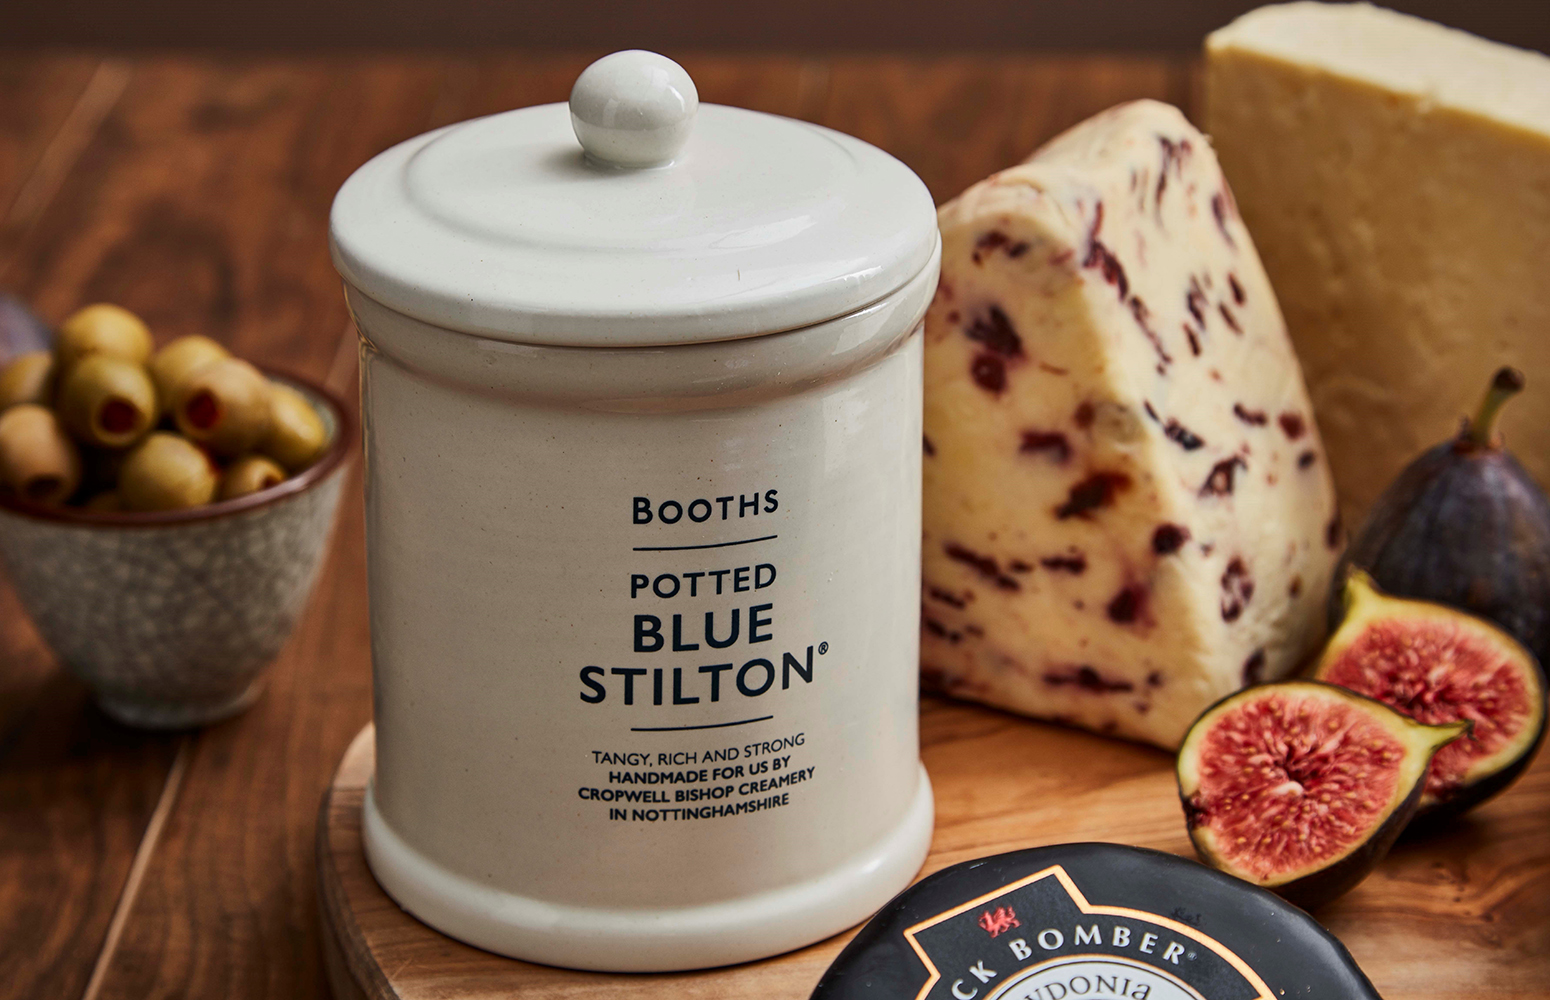 Booths potted stilton